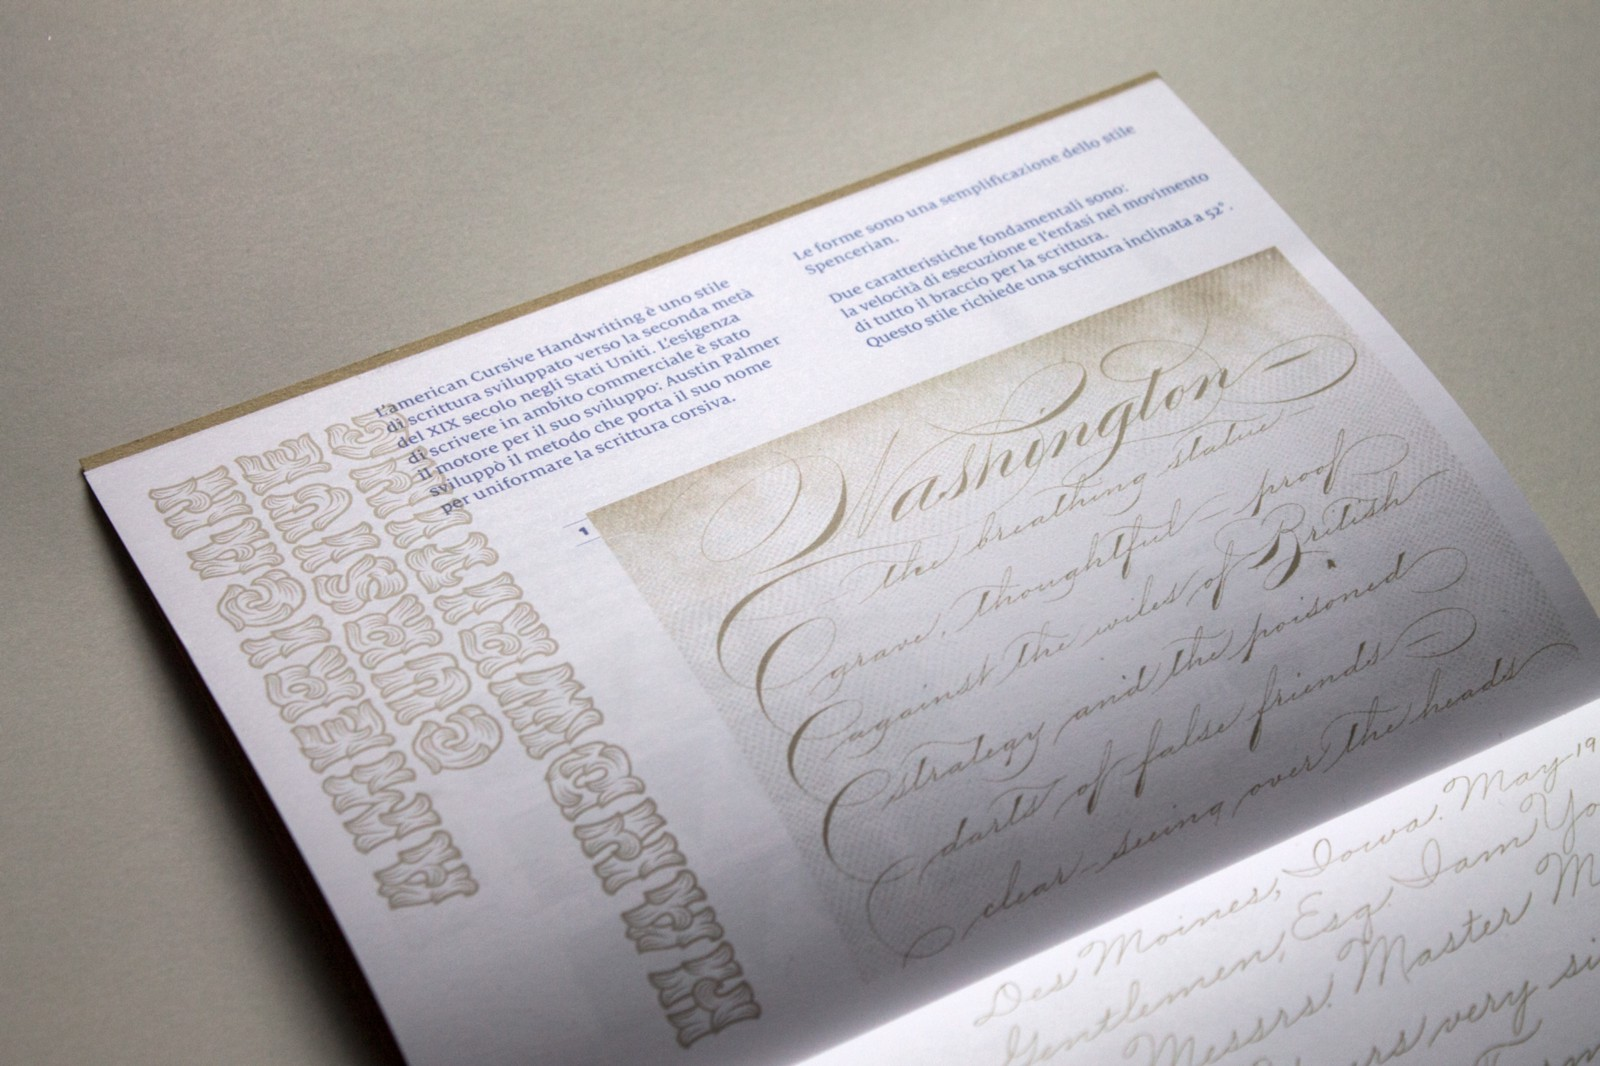 Handouts historical examples of Spencerian Preparatory practices